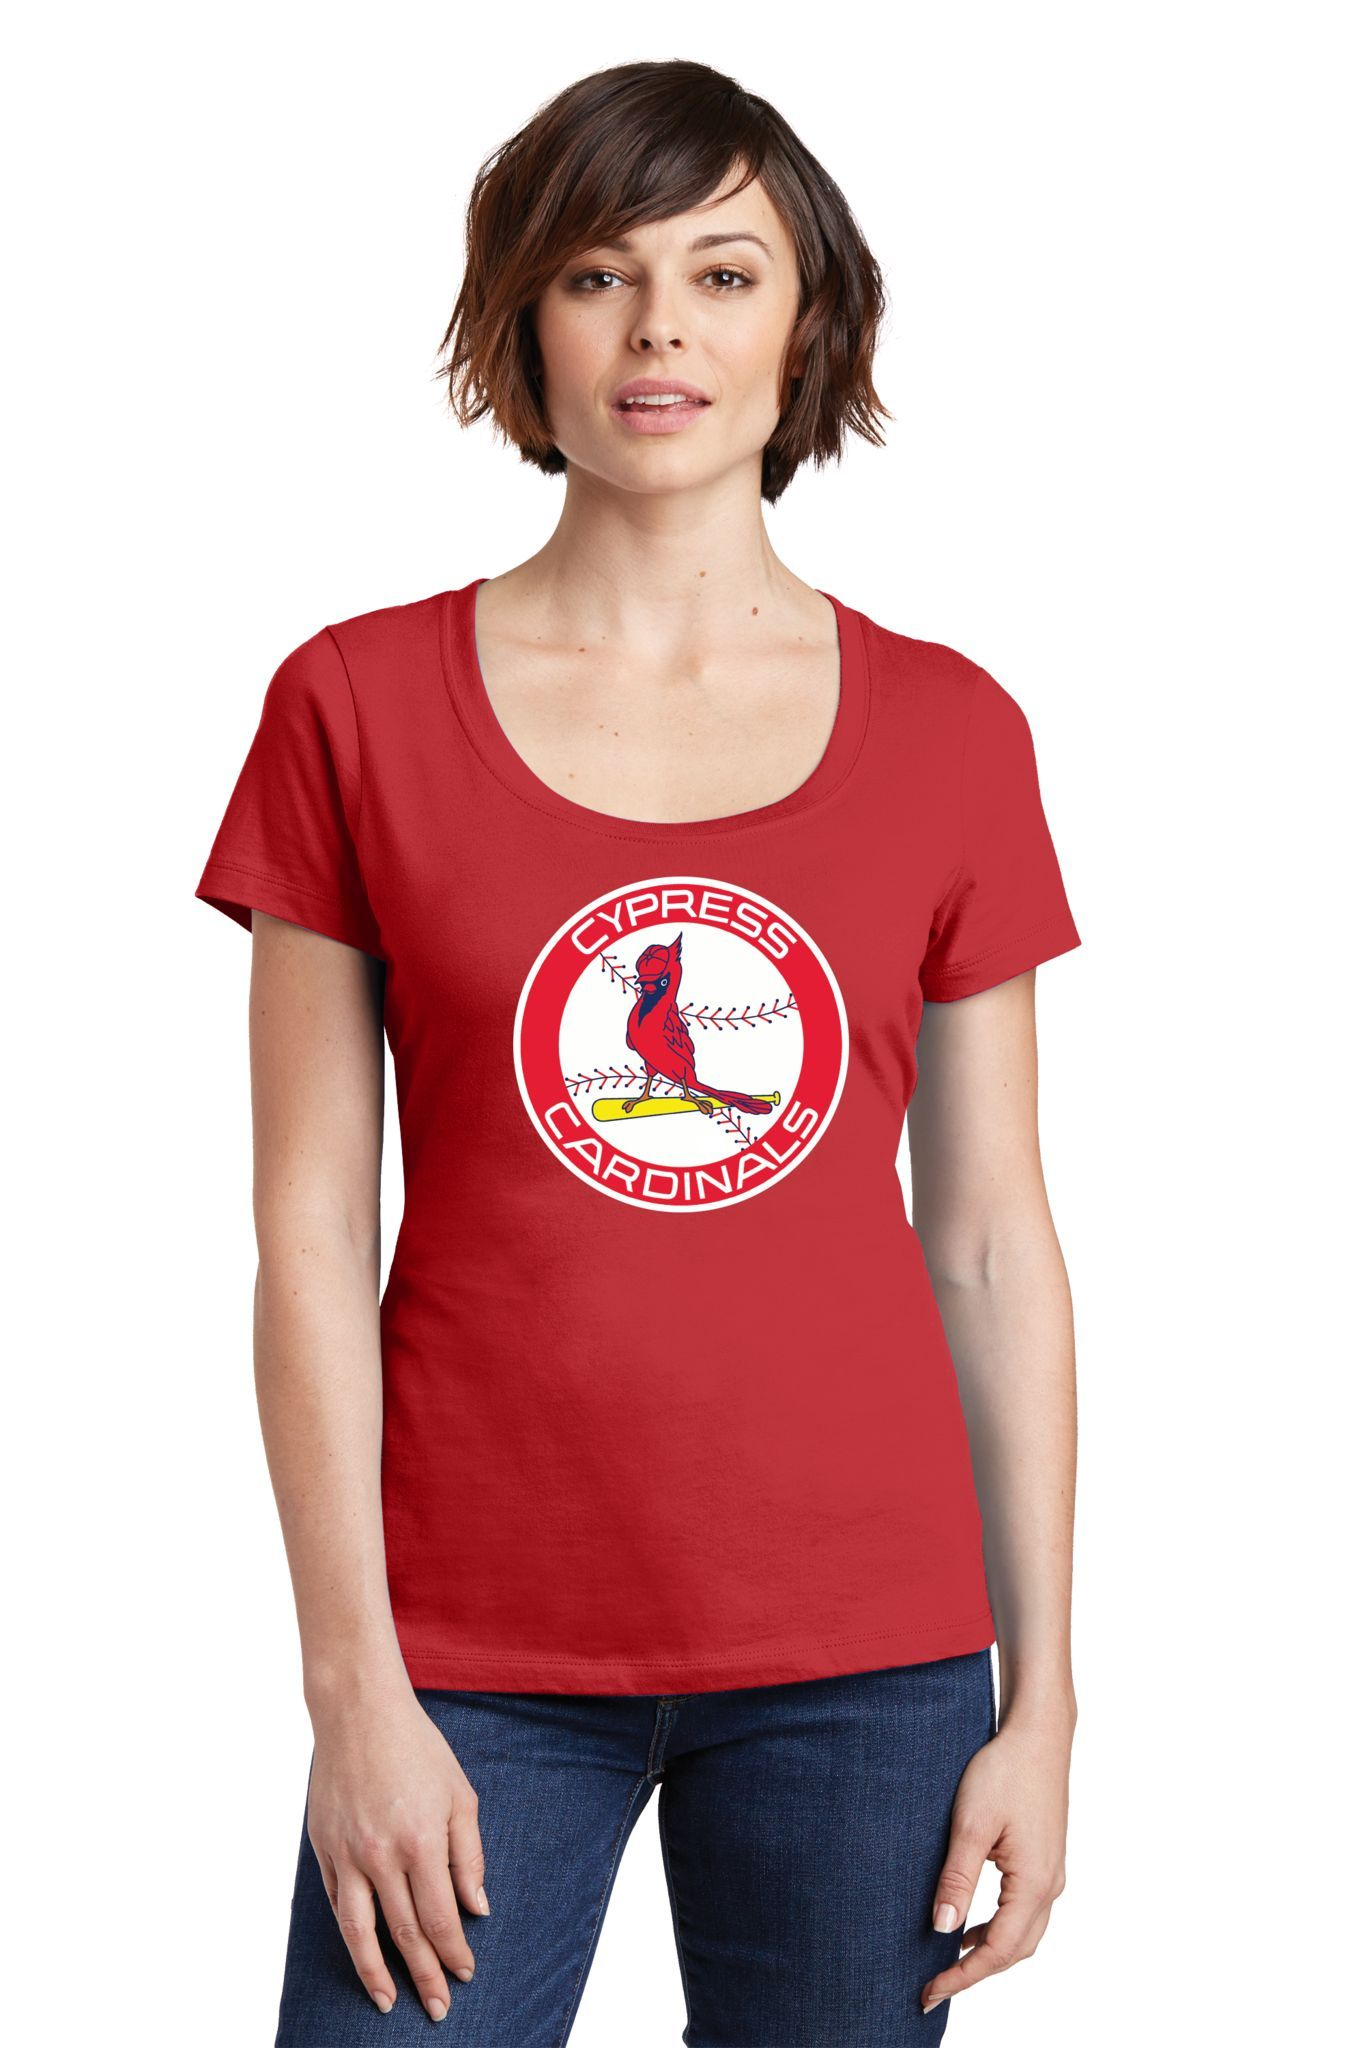 Cypress Cardinals Ladies Scoop T-Shirt